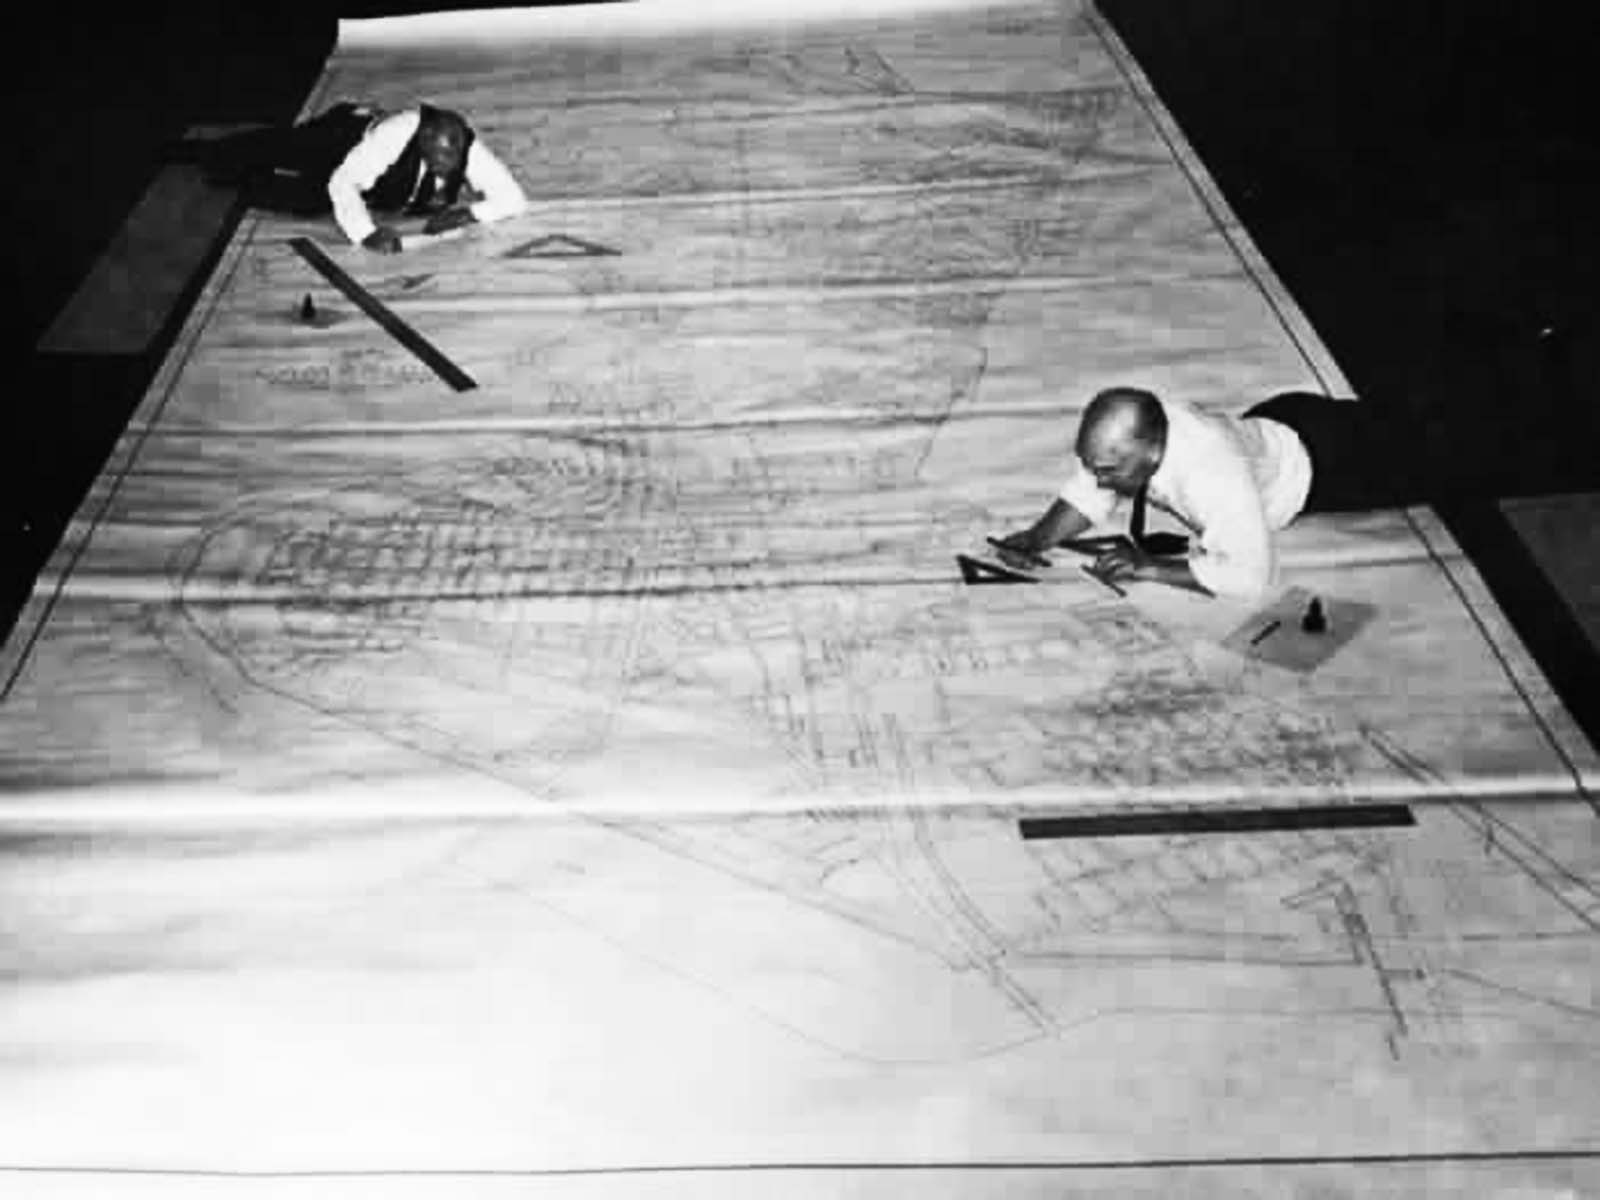 Urban designers before AutoCad.